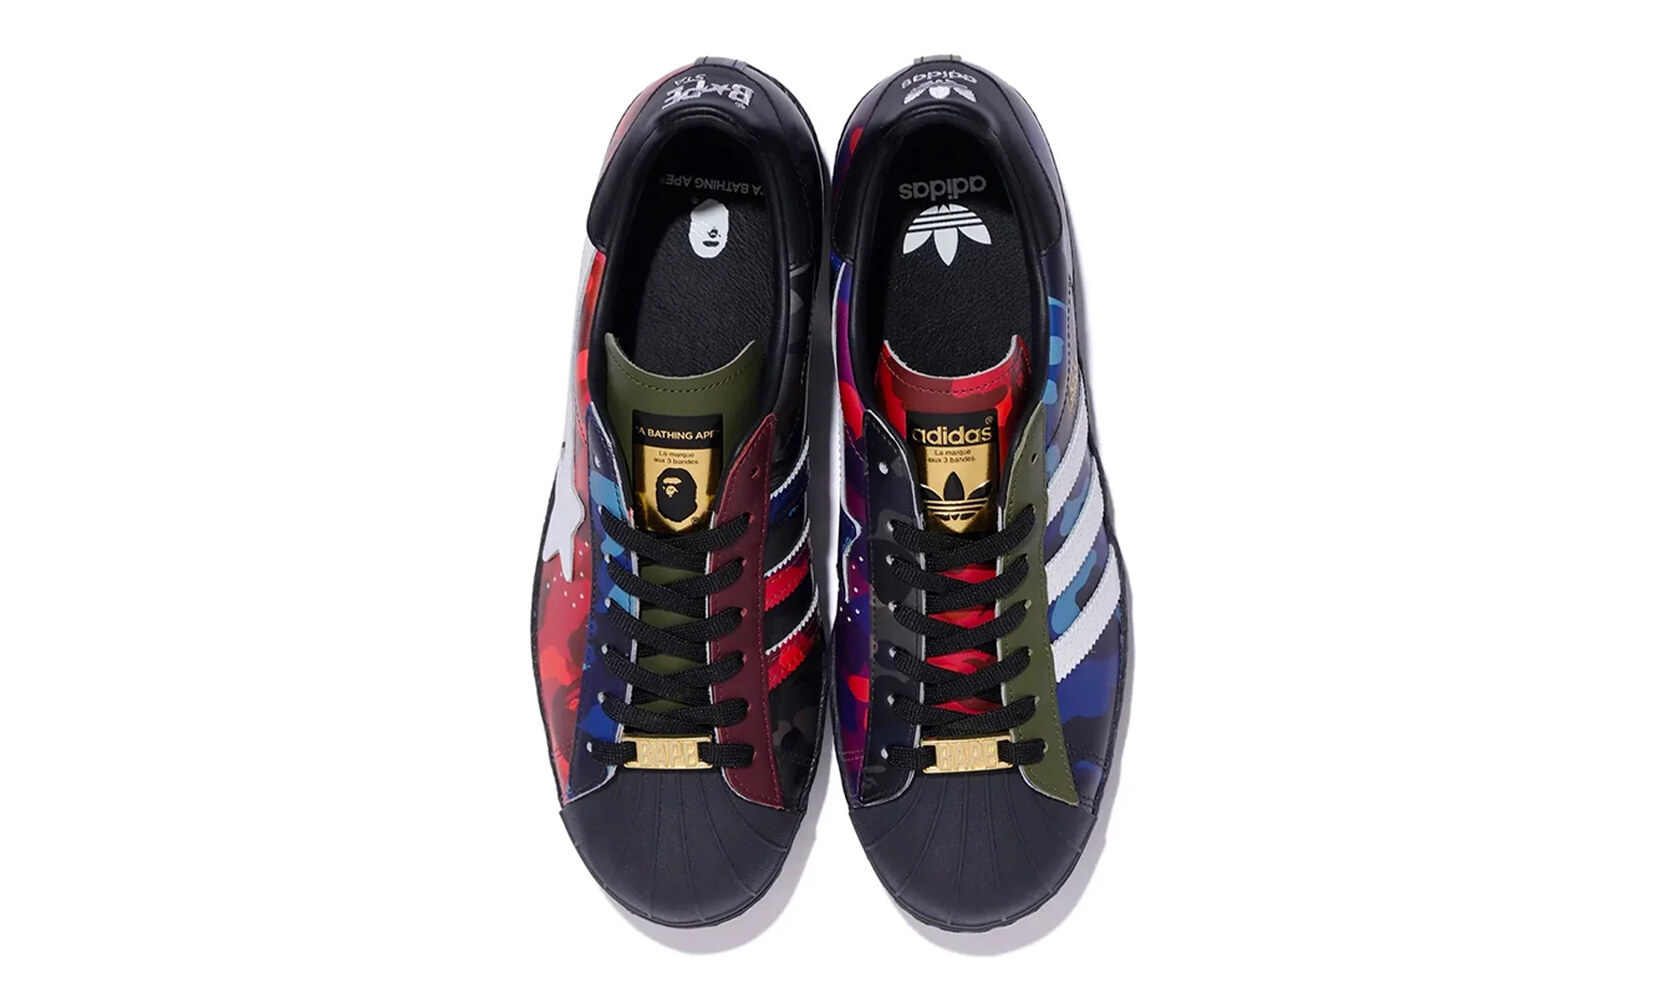 BAPE x adidas Originals Superstar